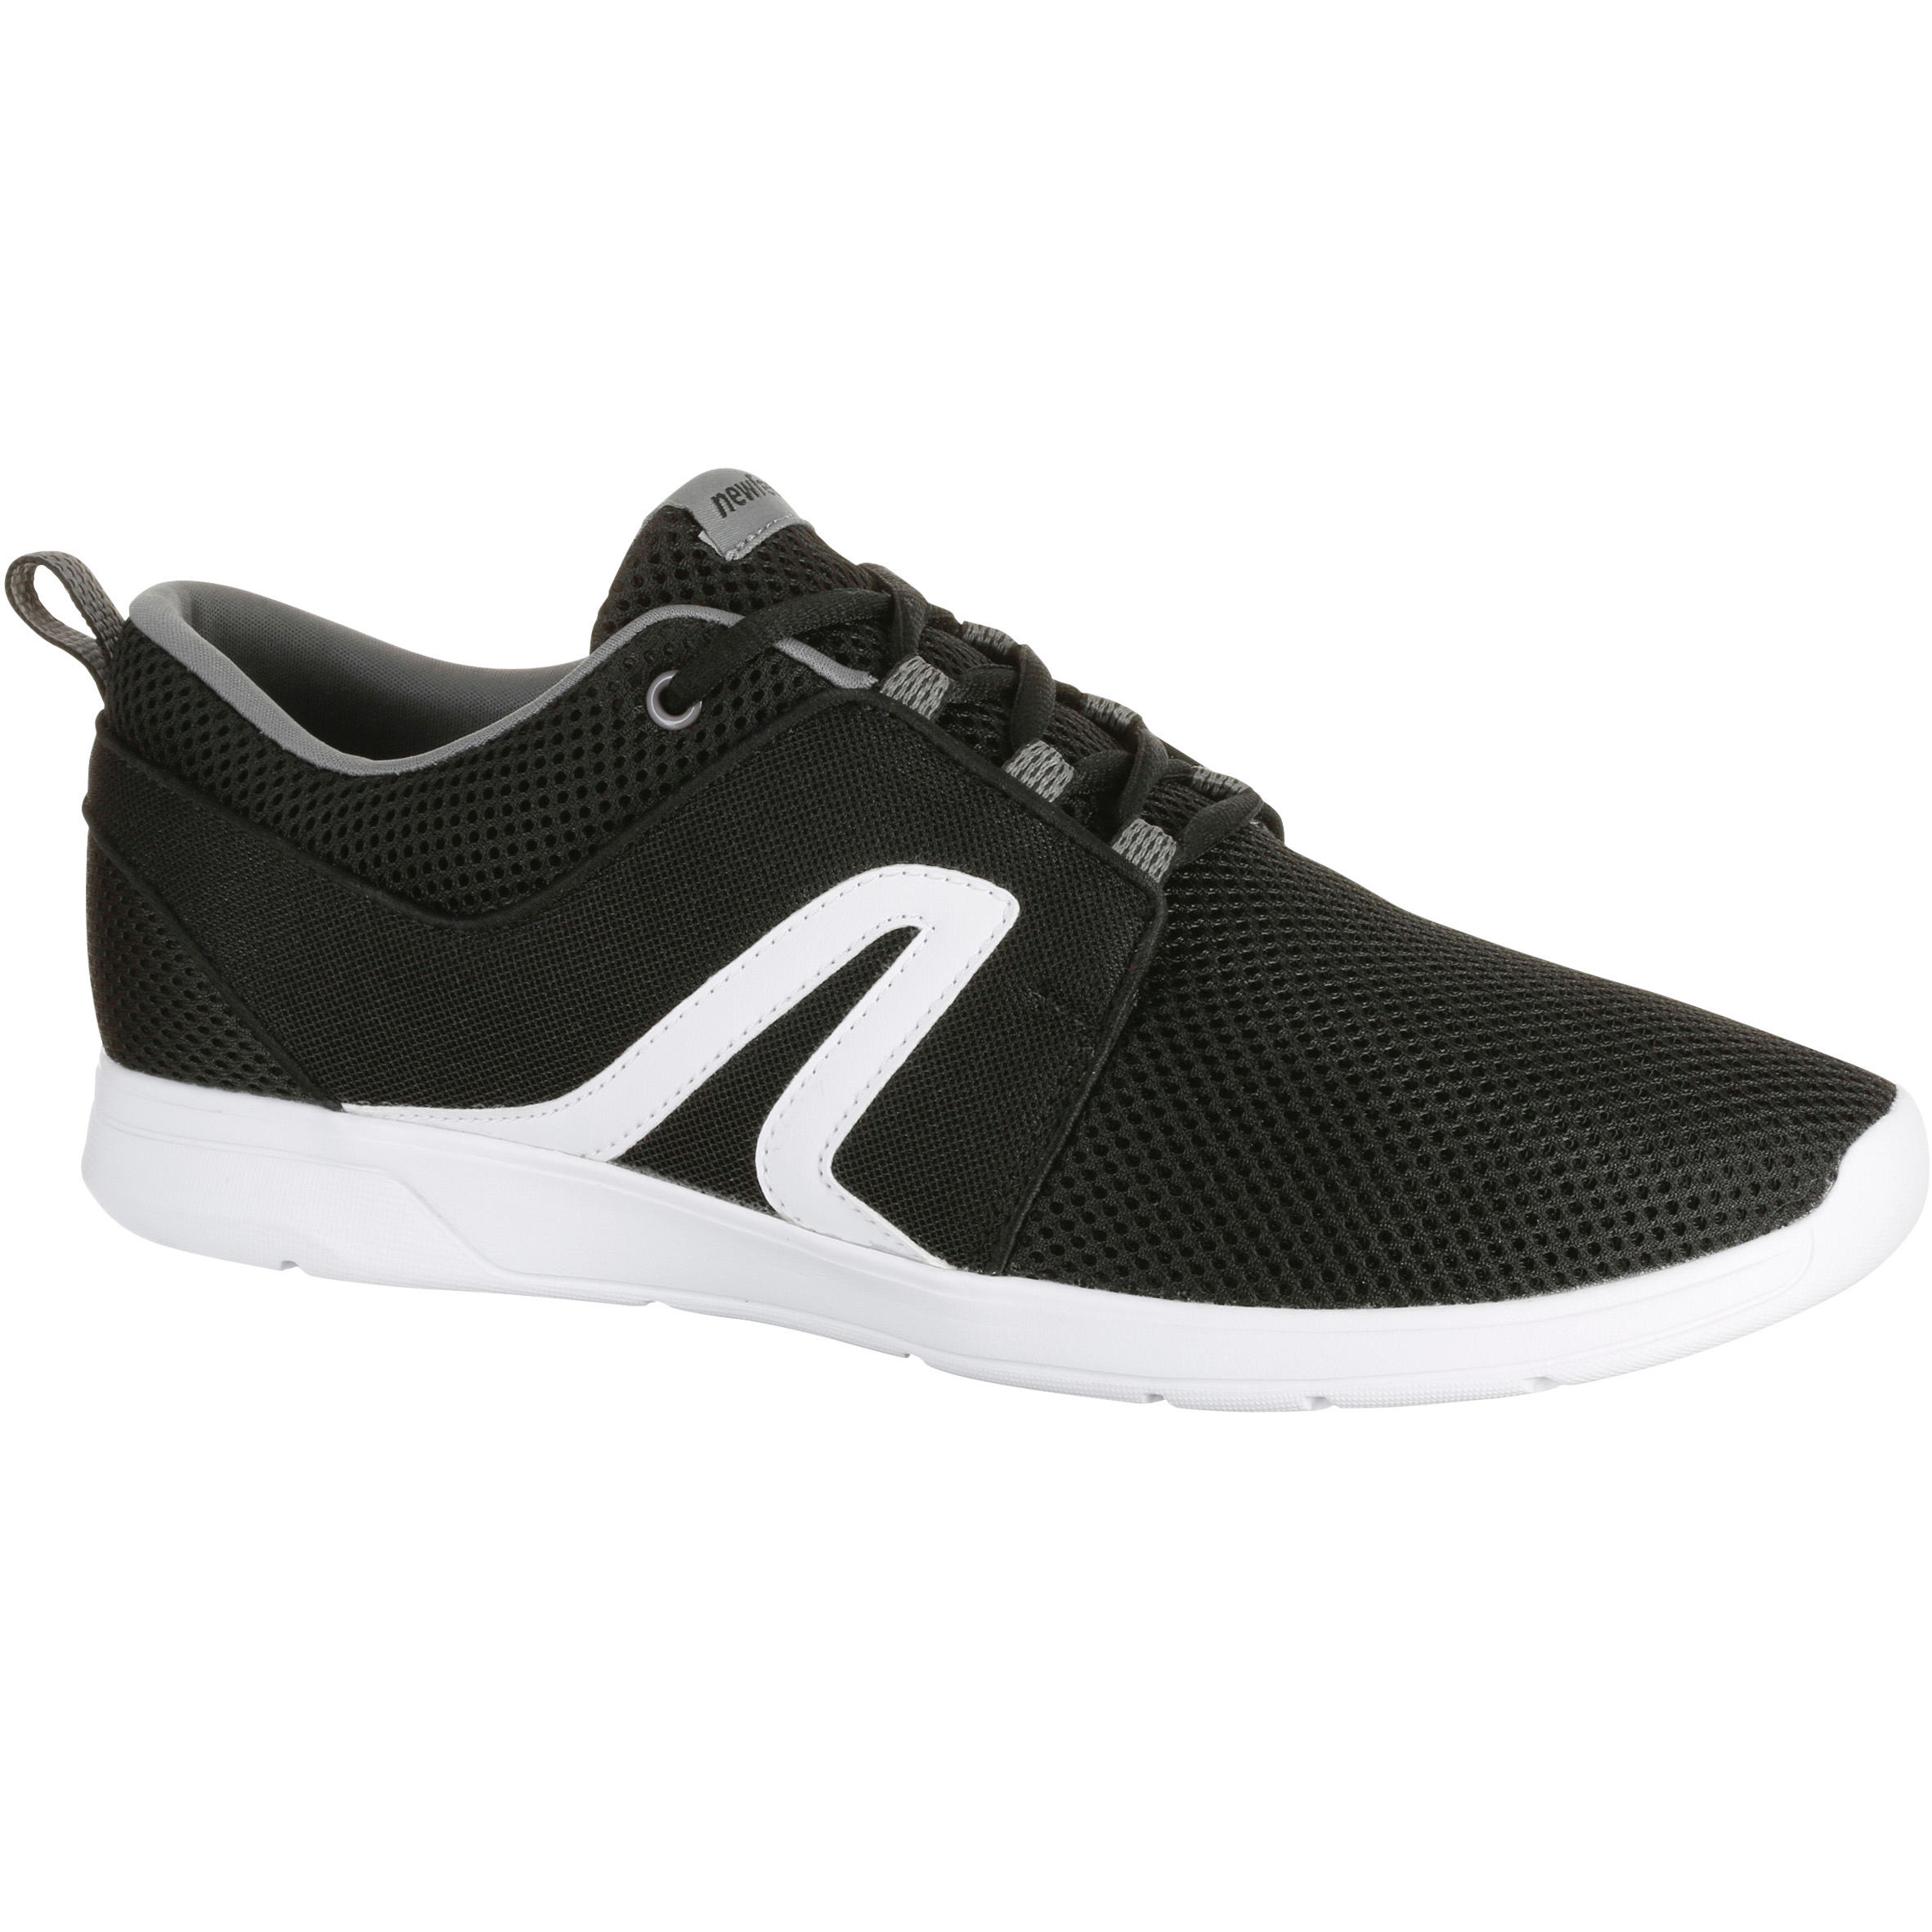 Lightweight walking shoes online India